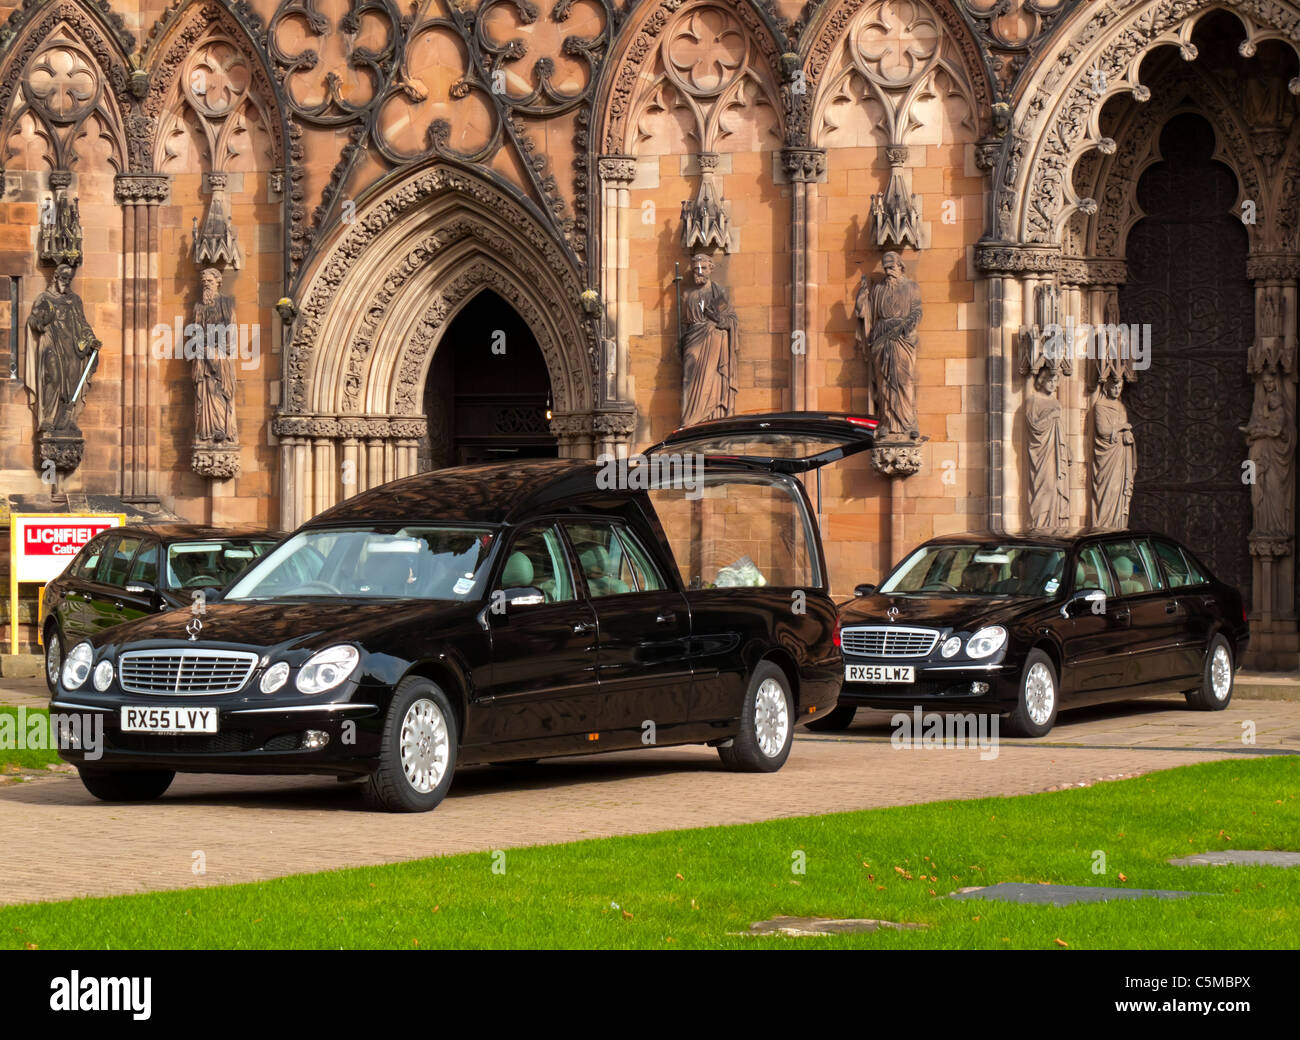 Funeral hearse and stretched Mercedes limousines parked outside Lichfield Cathedral in Staffordshire England UK - Stock Image